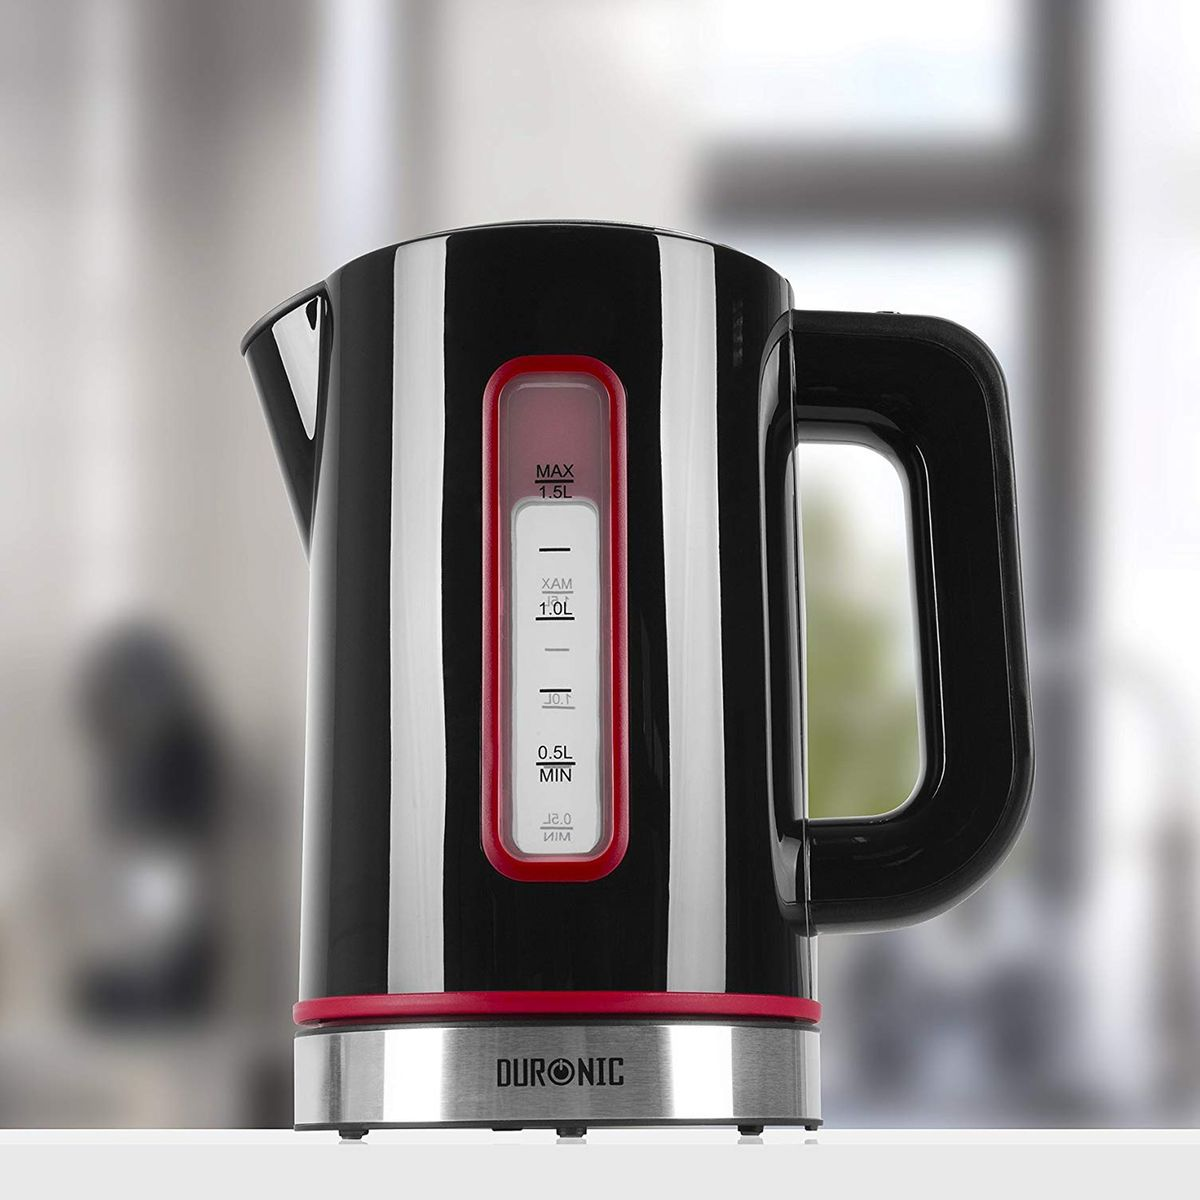 The Best Kettles On Amazon UK According